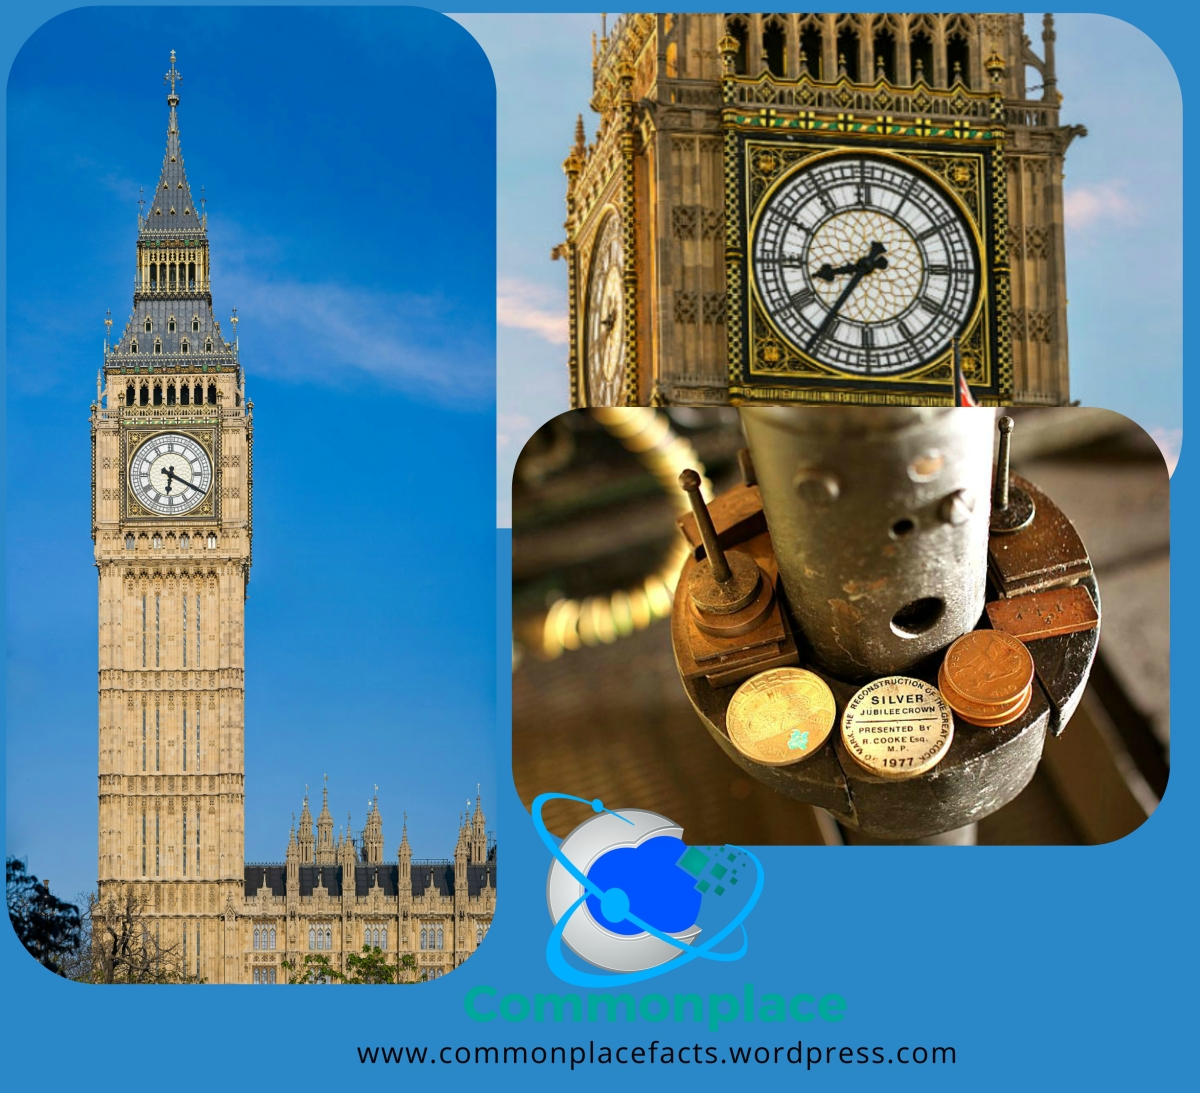 Using Pennies to Keep Big Ben Accurate Makes Good Cents